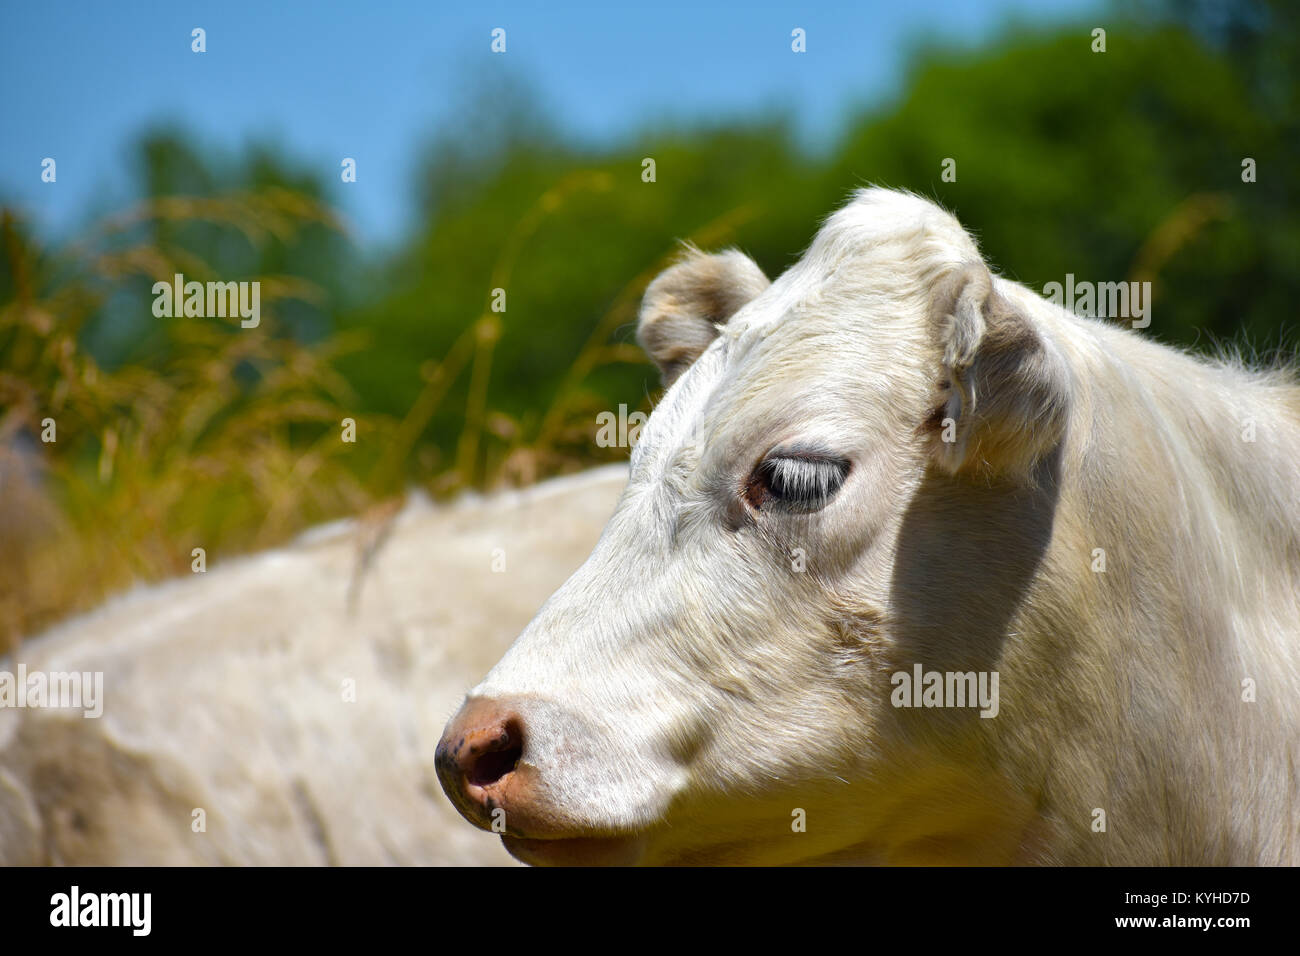 A white bull's face showing the profile with a soft blurred background of tall grasses and evergreen trees. - Stock Image